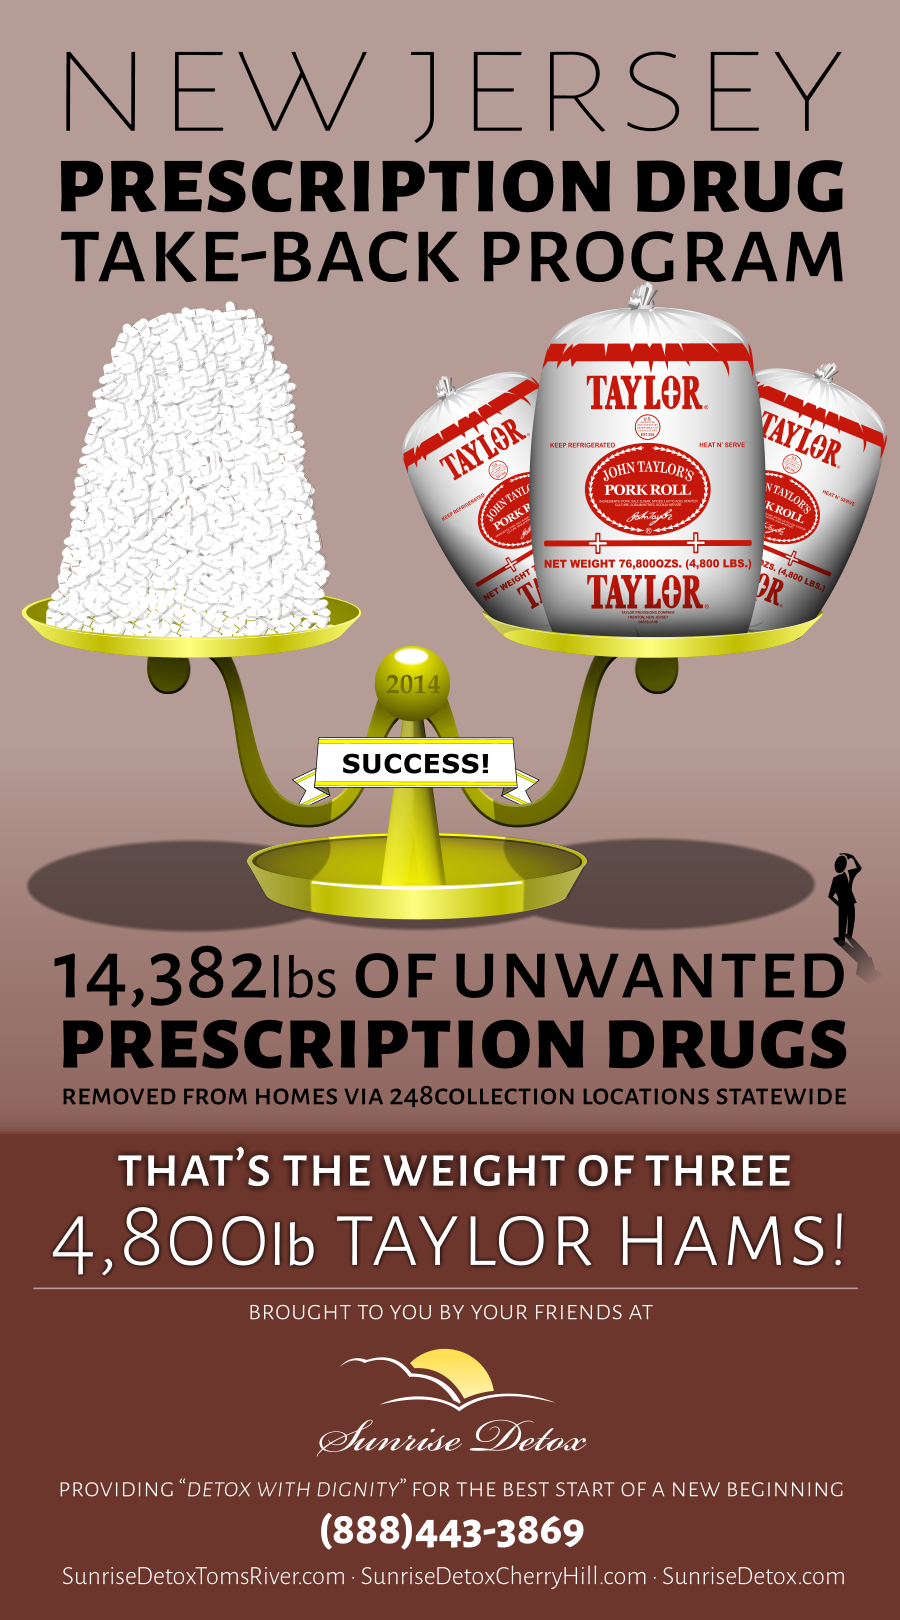 Drug Take Back Day totals for New Jersey in 2014